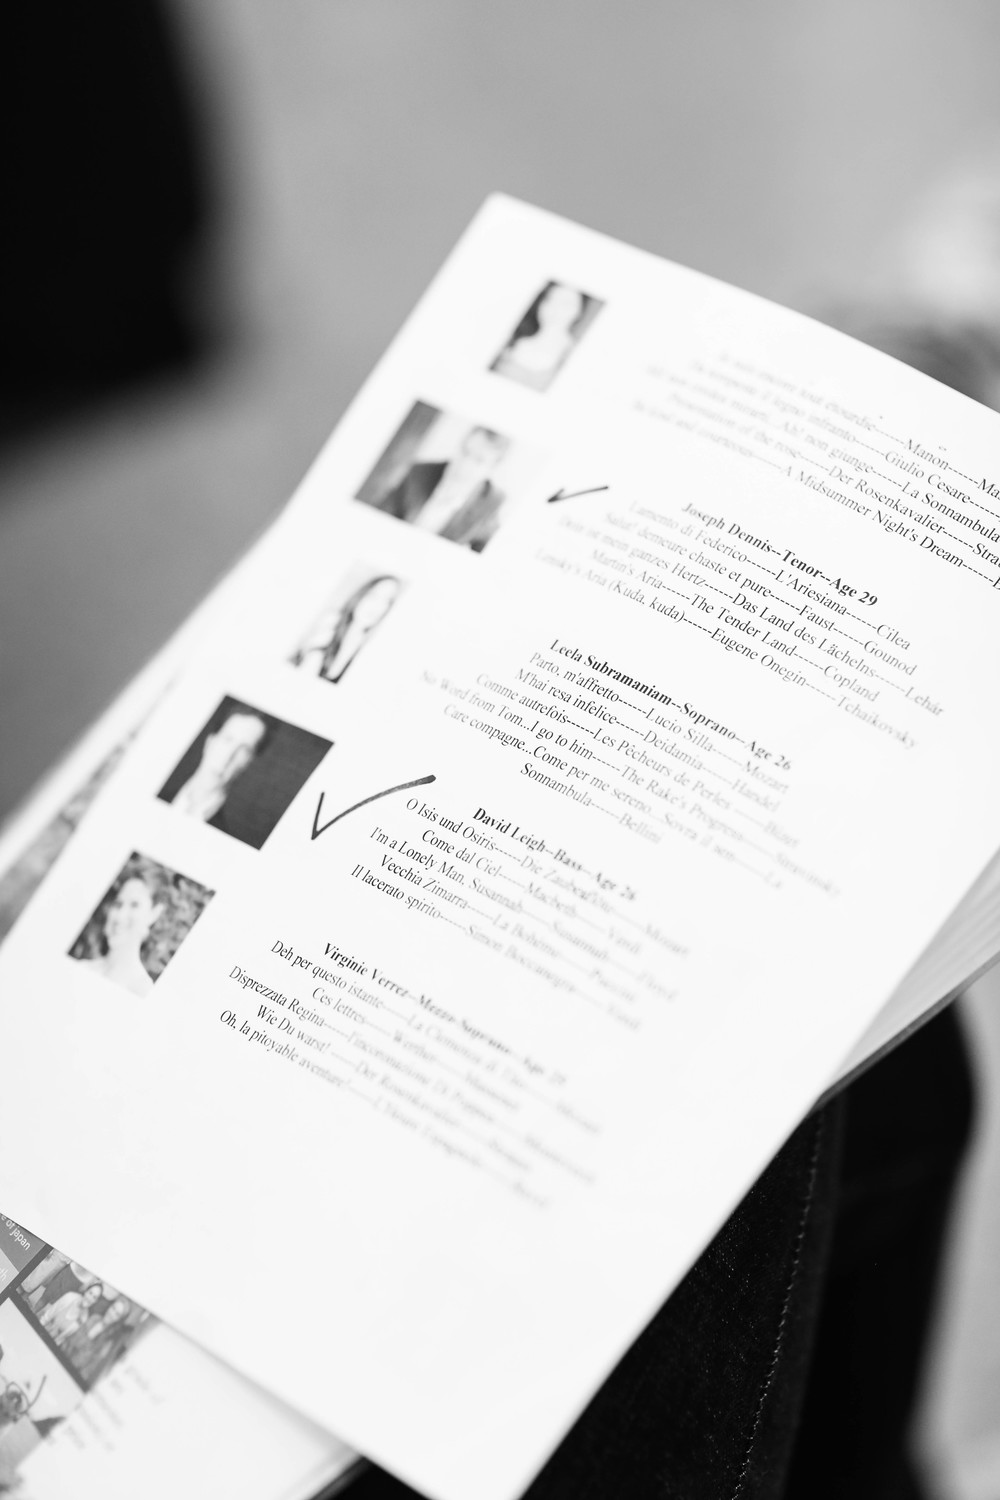 Courtesy of Rebecca Fa